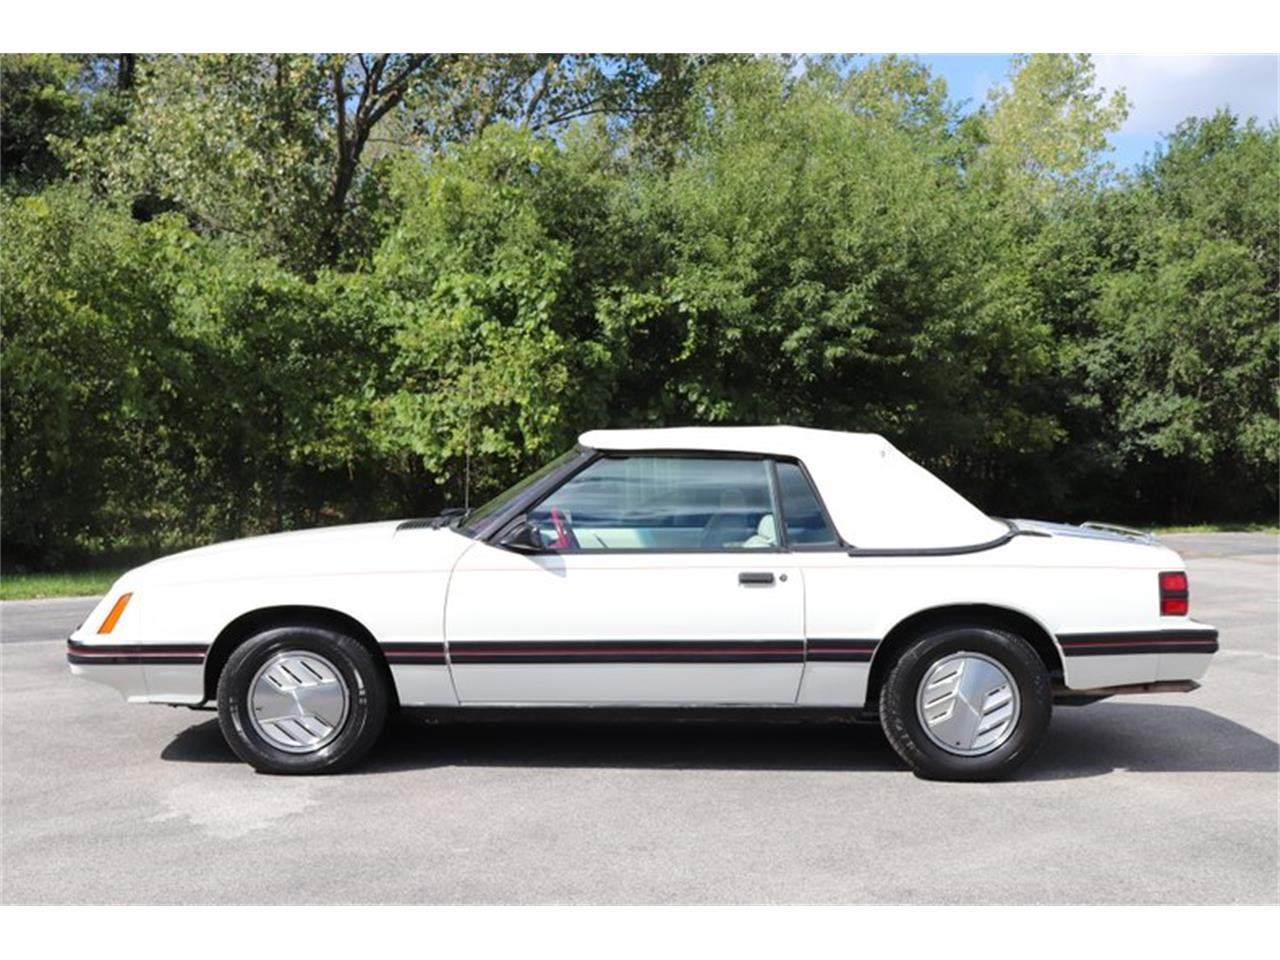 Large Picture of '83 Mustang located in Illinois - $7,900.00 Offered by Midwest Car Exchange - OHLI